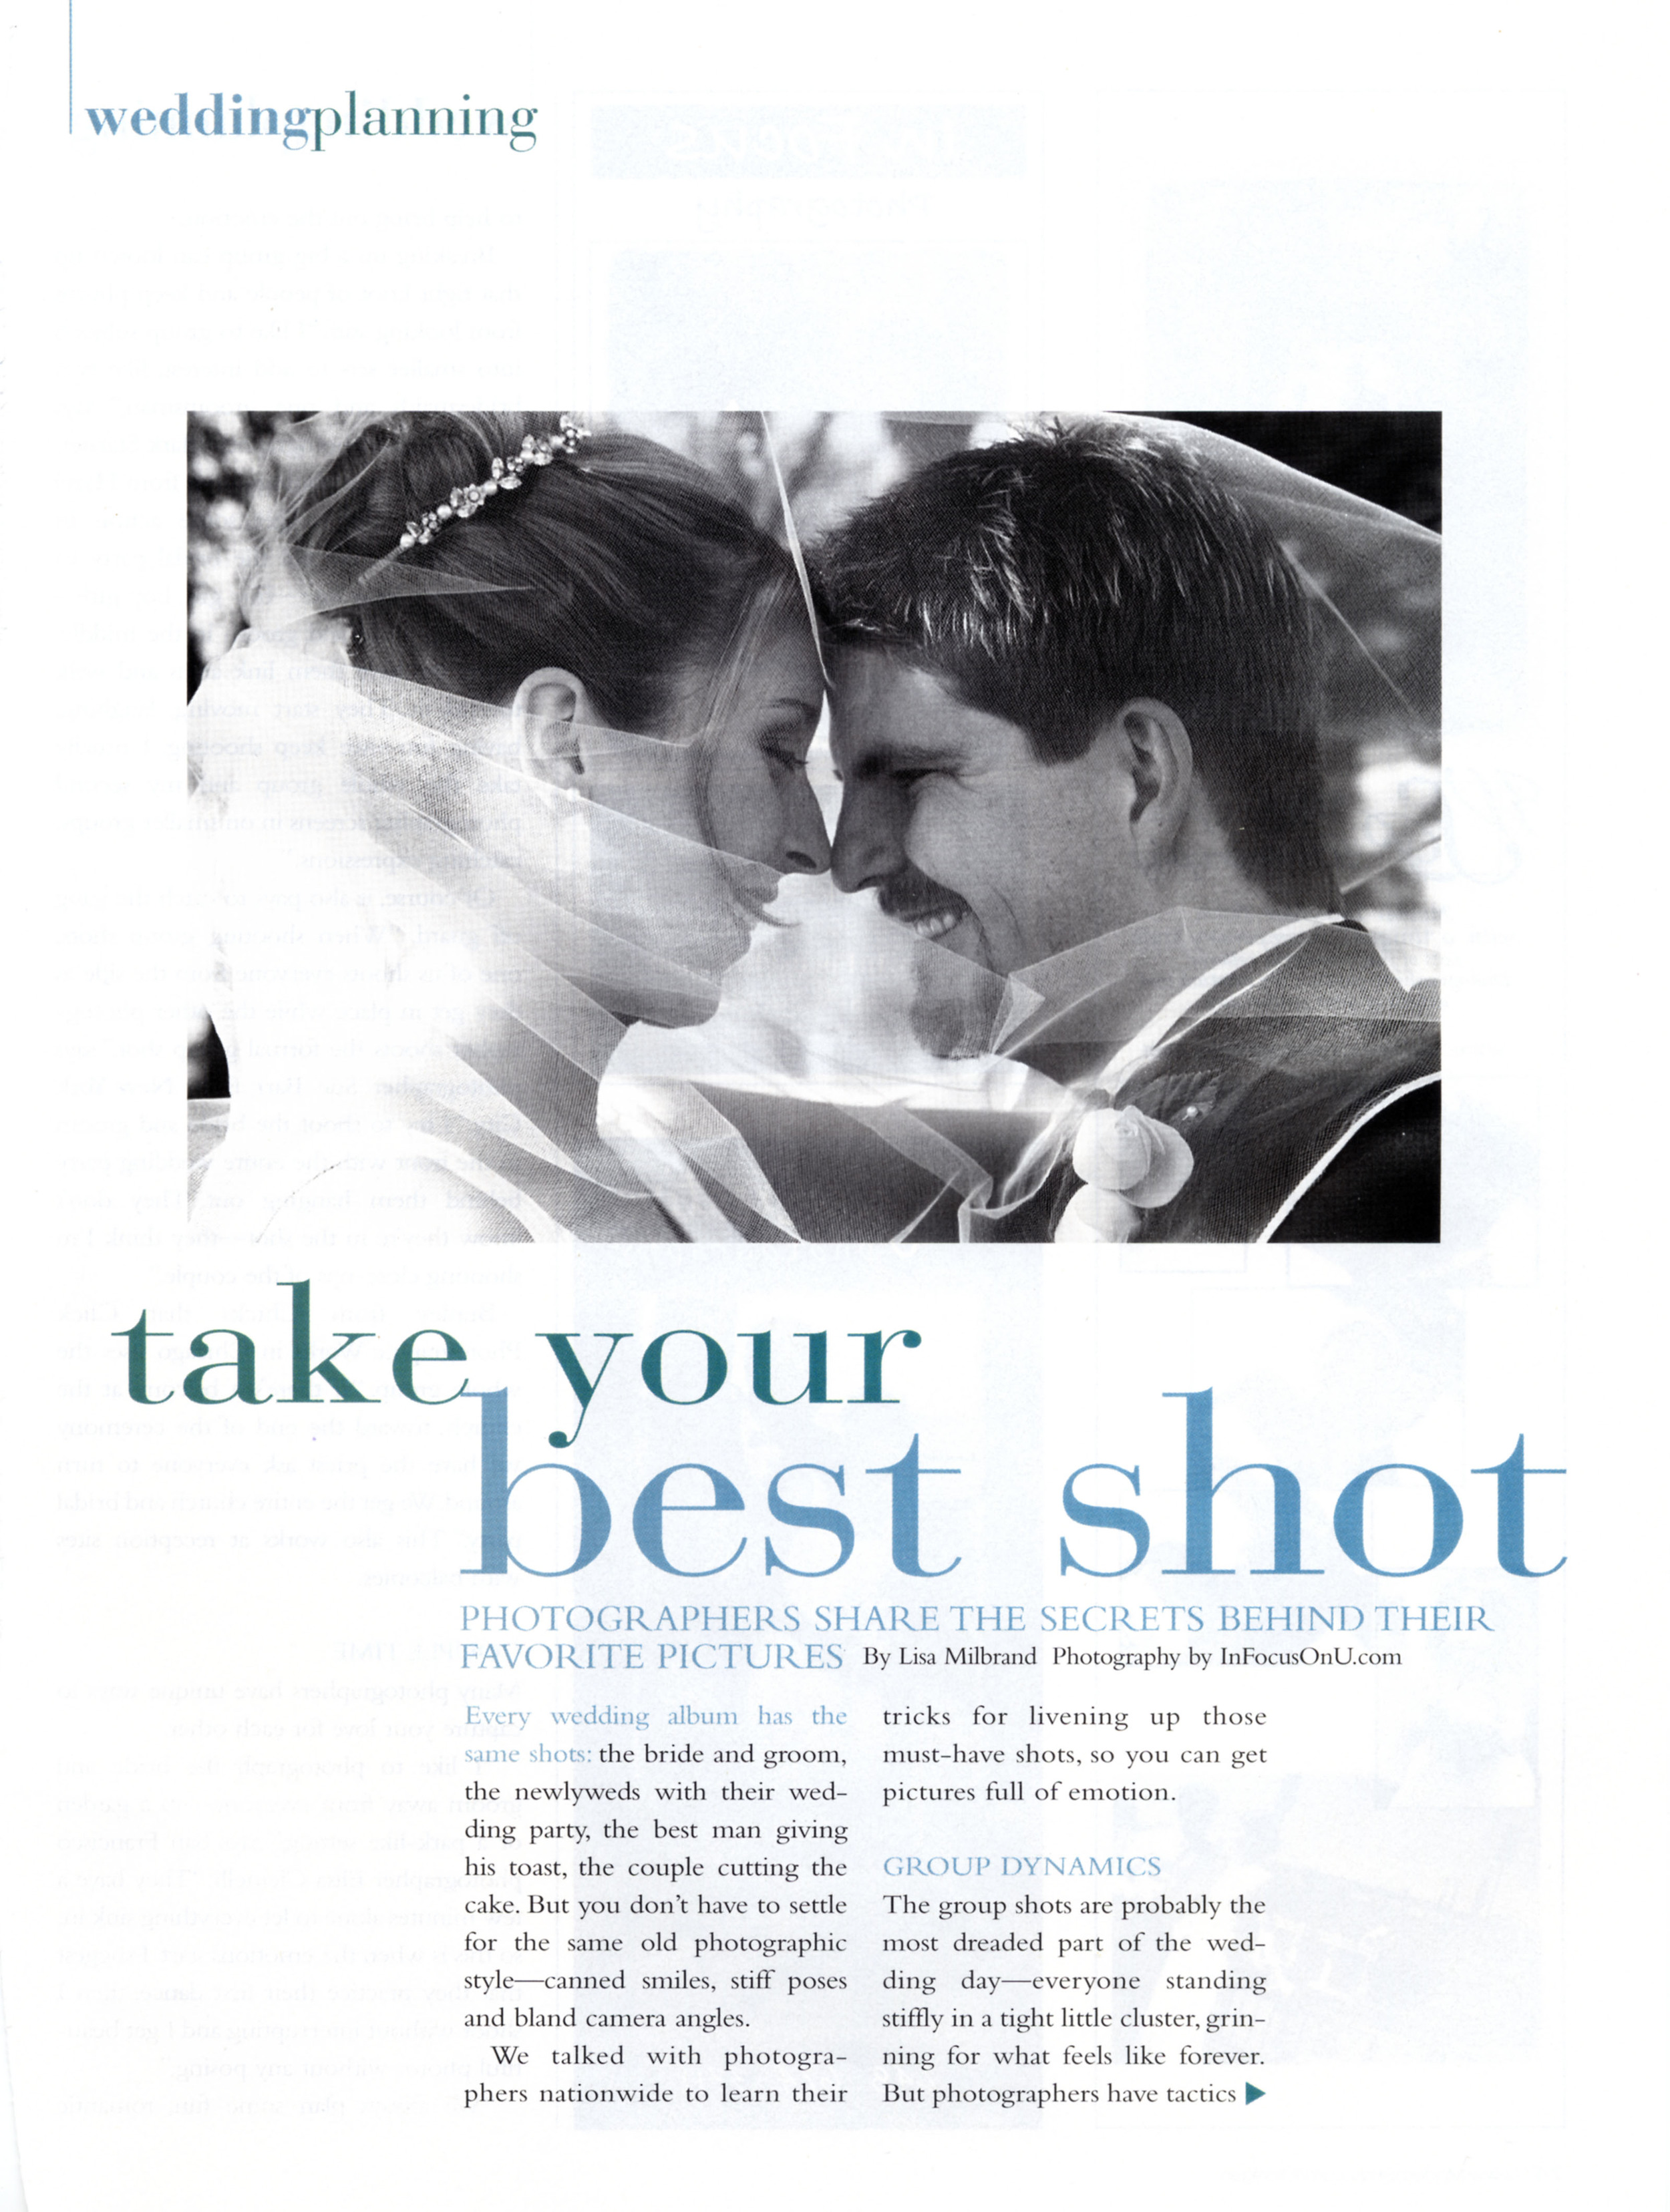 take your best shot article page 1.jpg